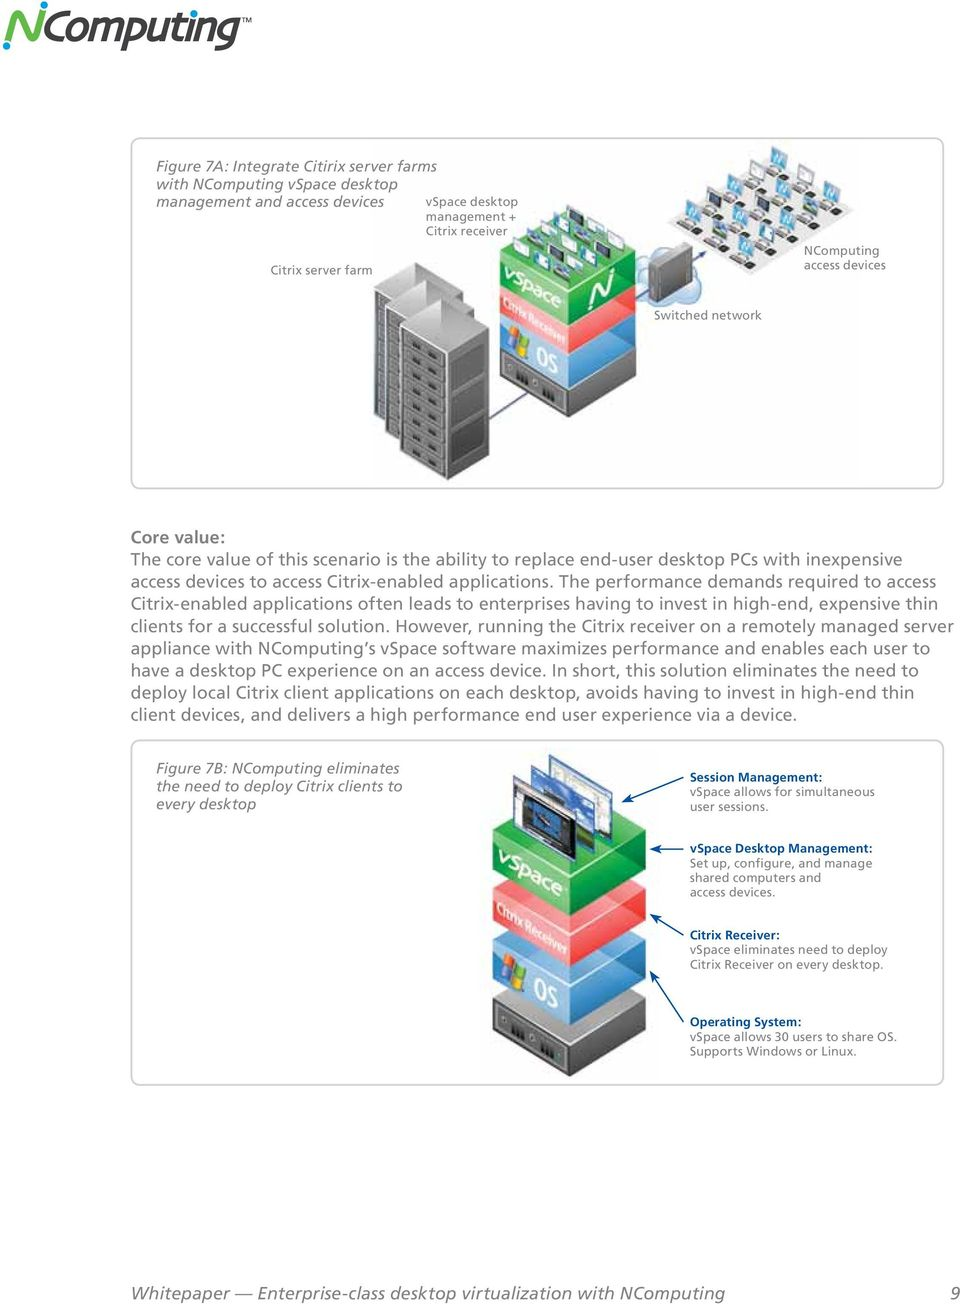 The performance demands required to access Citrix-enabled applications often leads to enterprises having to invest in high-end, expensive thin clients for a successful solution.